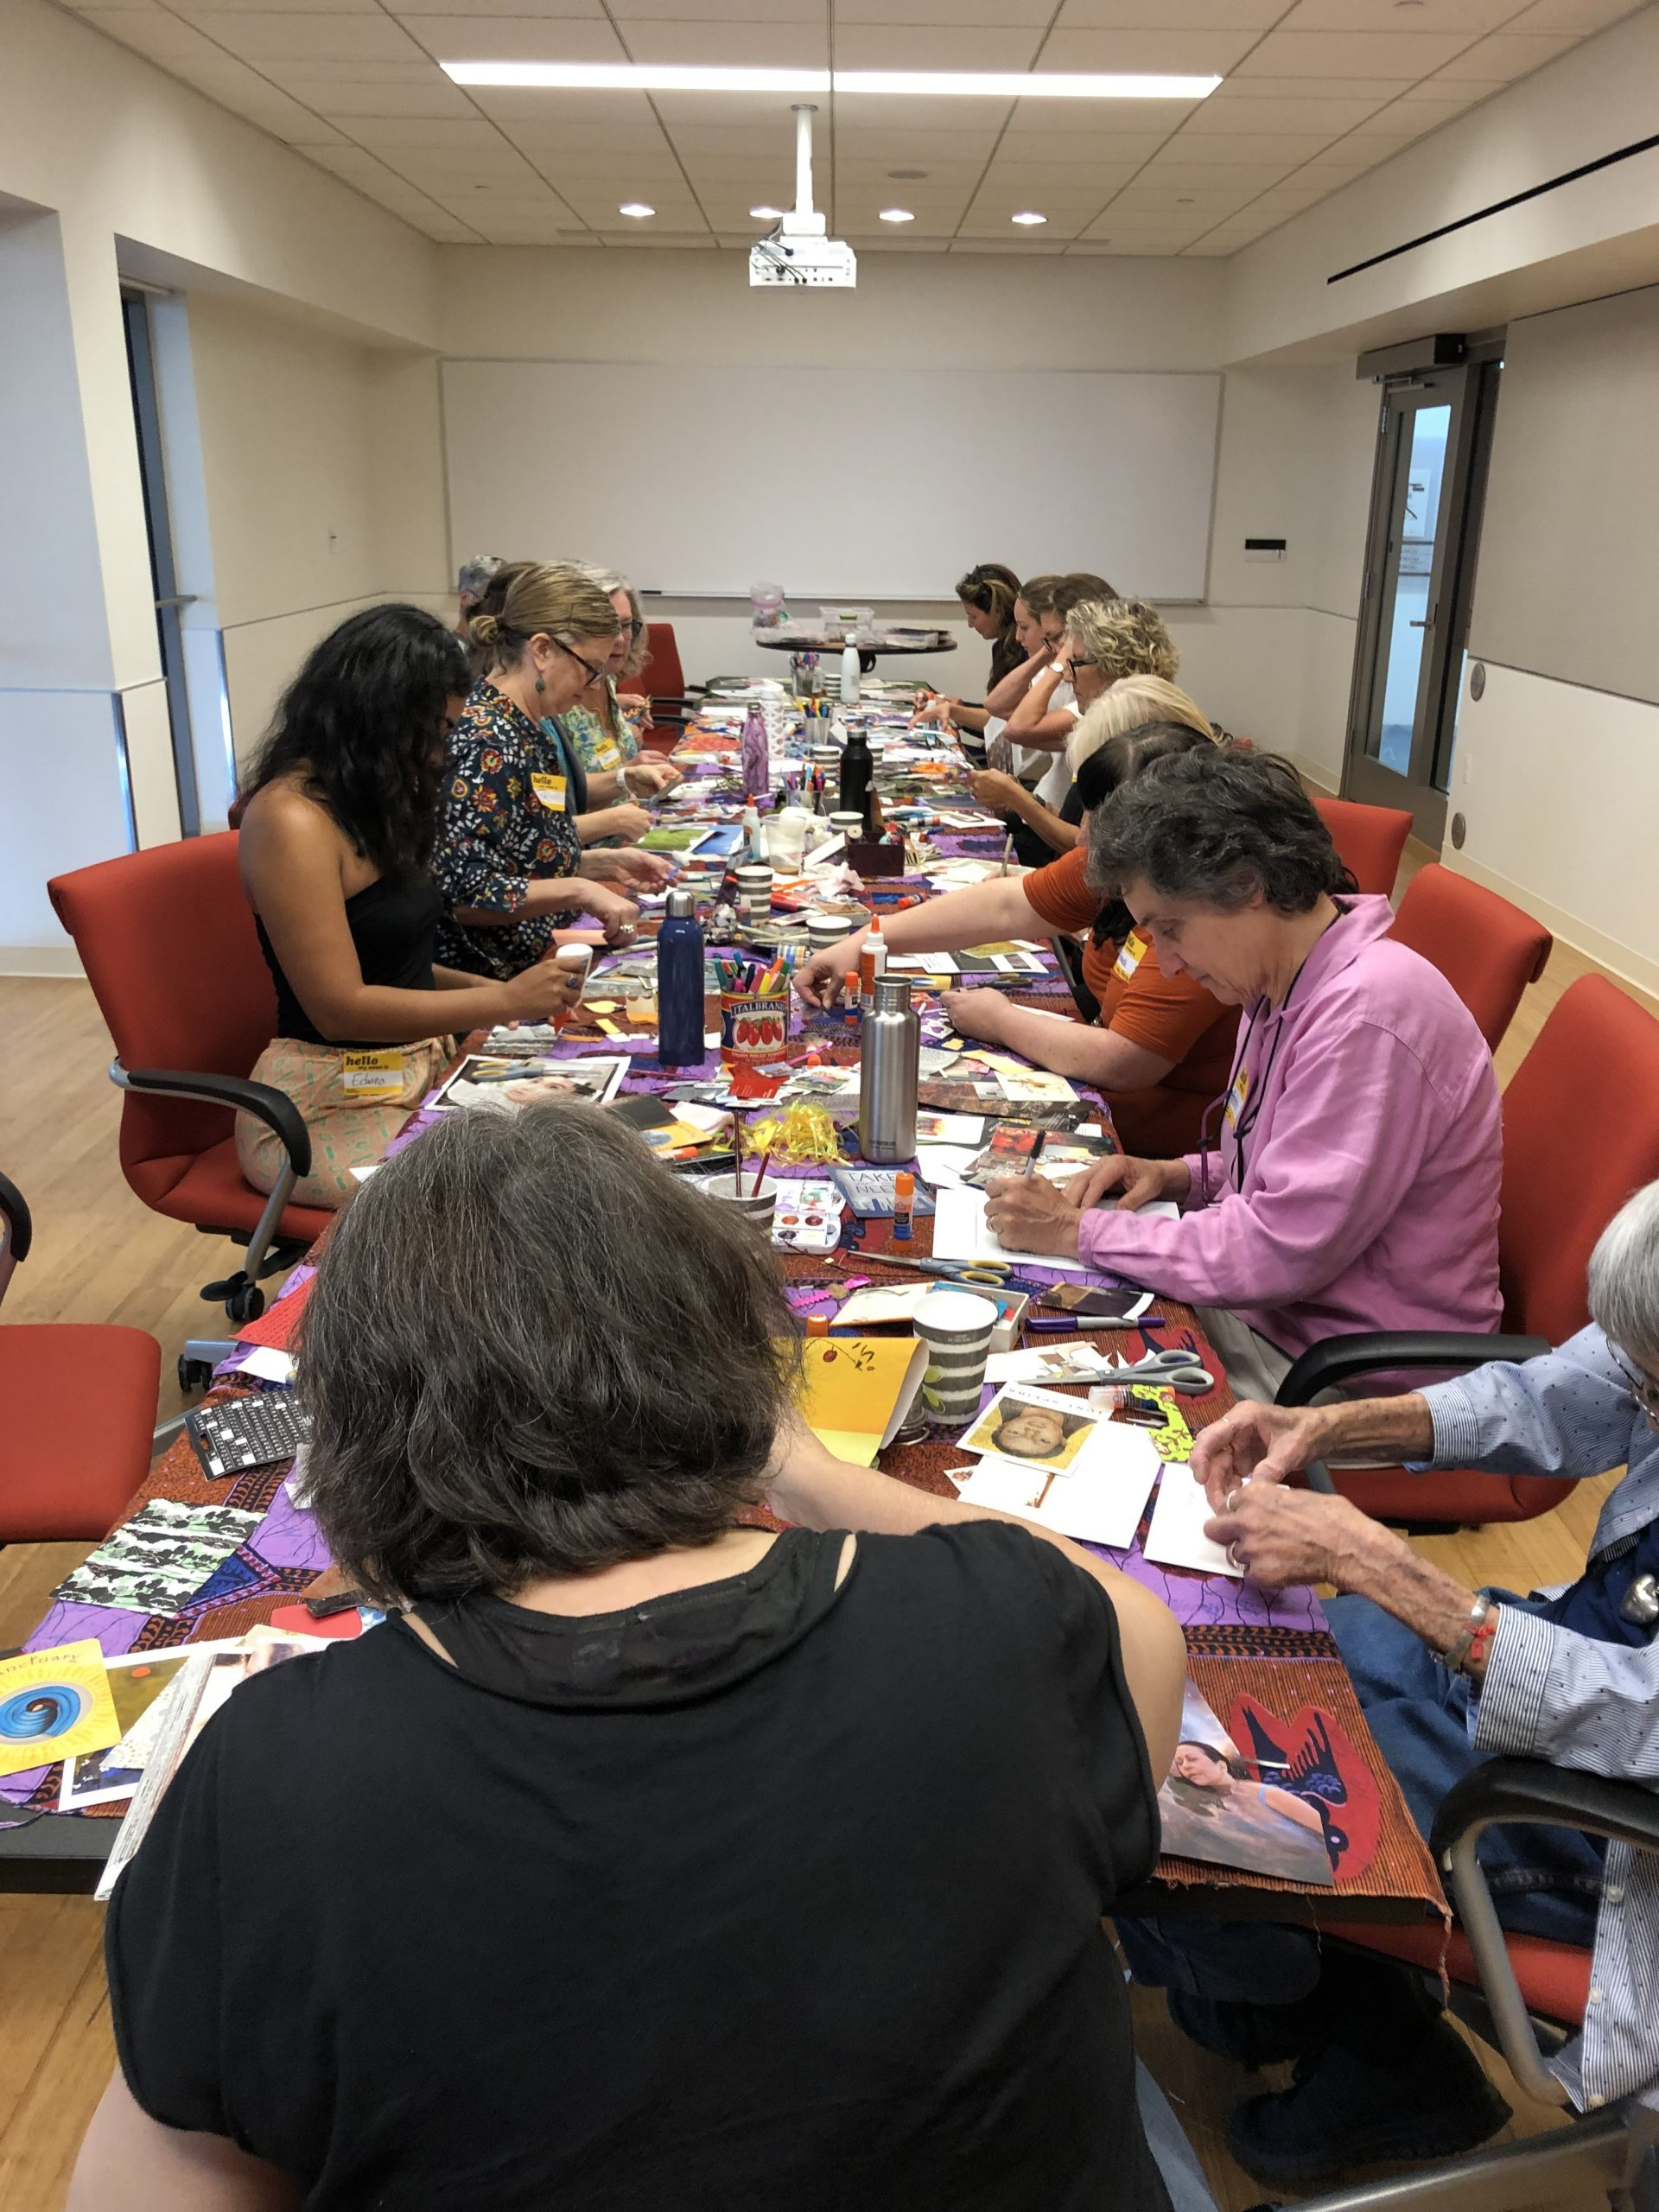 A group of women seated at a long conference table, making postcards with collage materials.